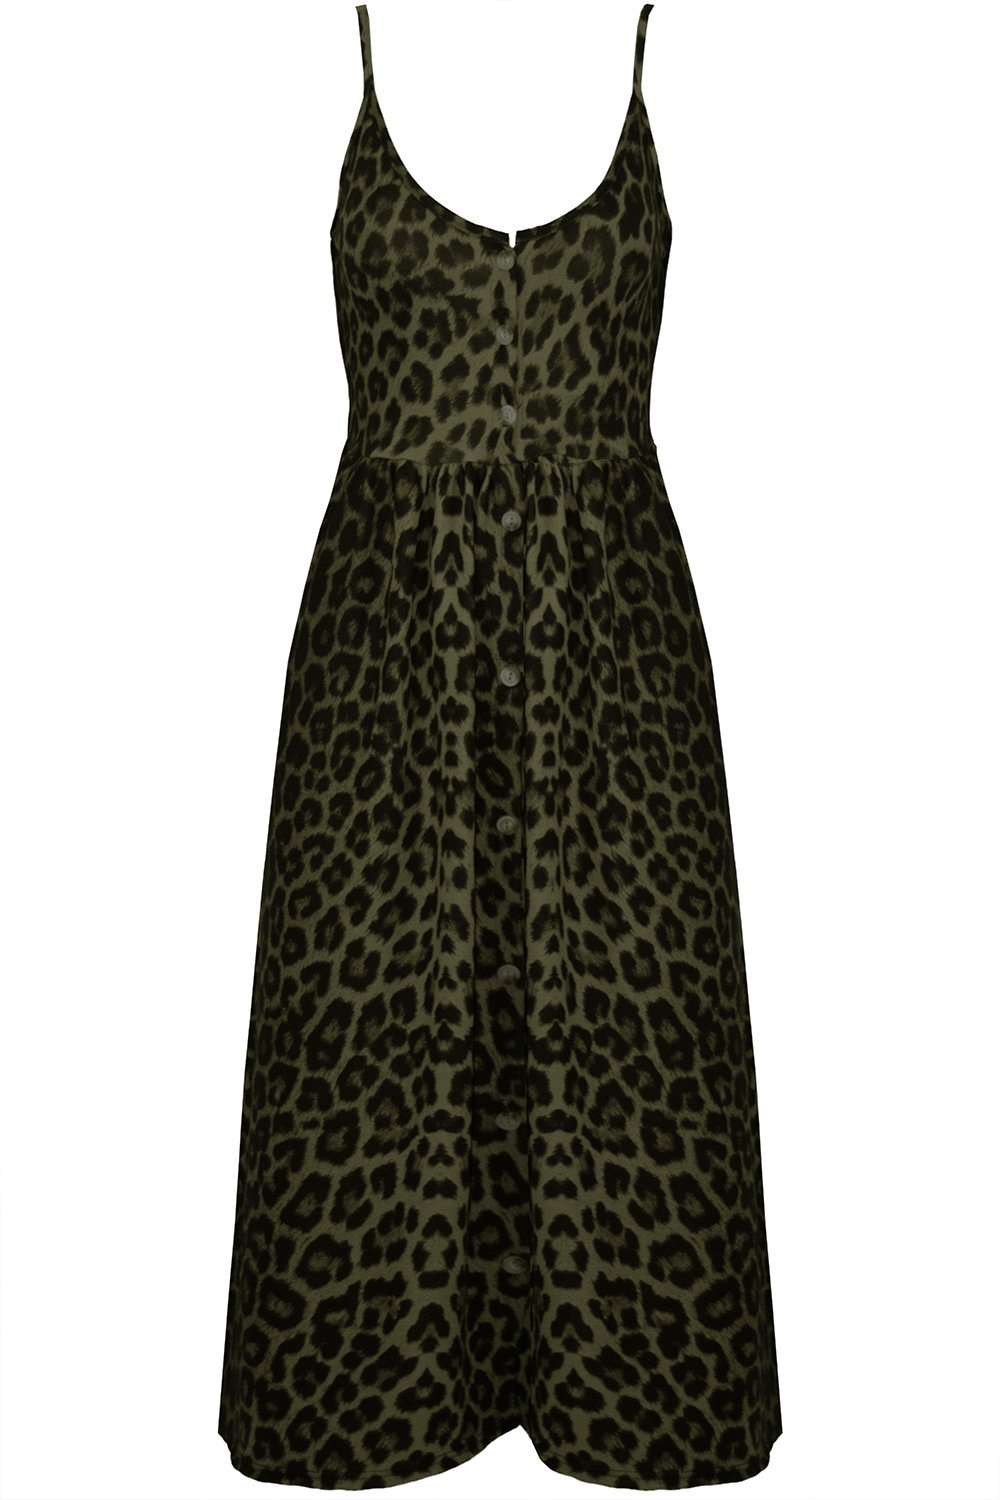 Breana Button Up Strappy Leopard Print Dress - bejealous-com